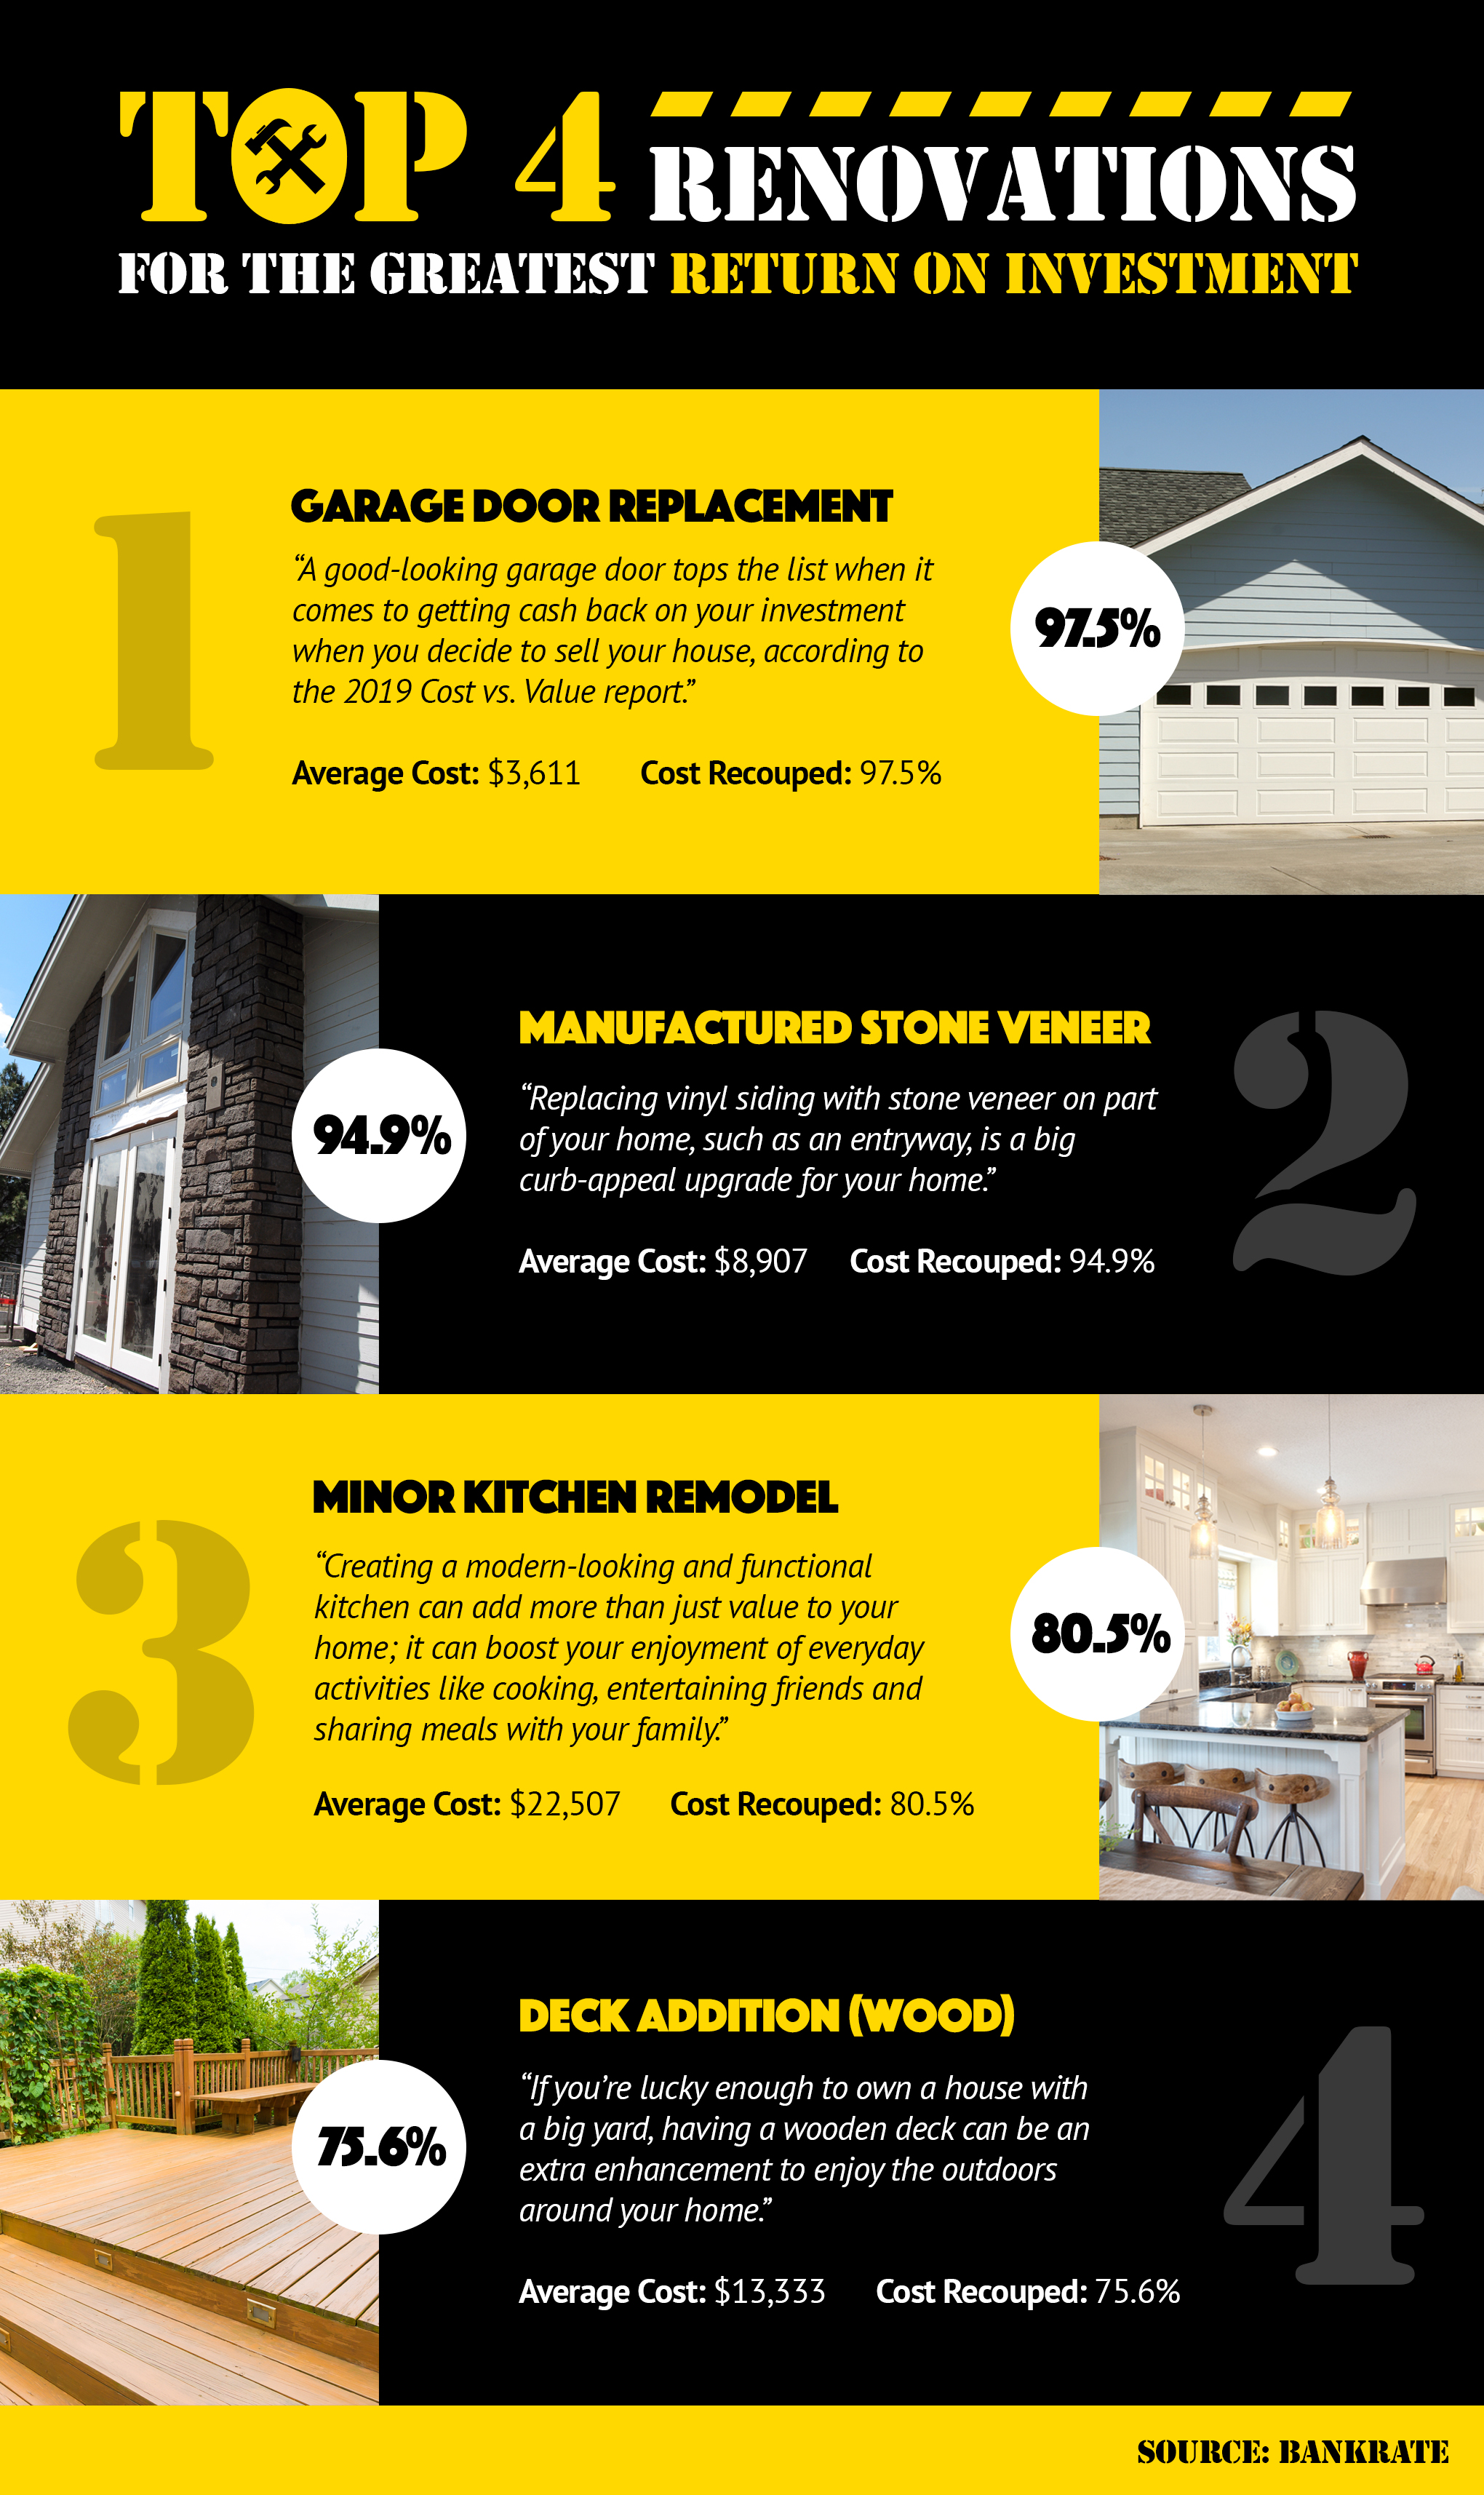 Top 4 Renovations For The Greatest Return On Investment! [INFOGRAPHIC]